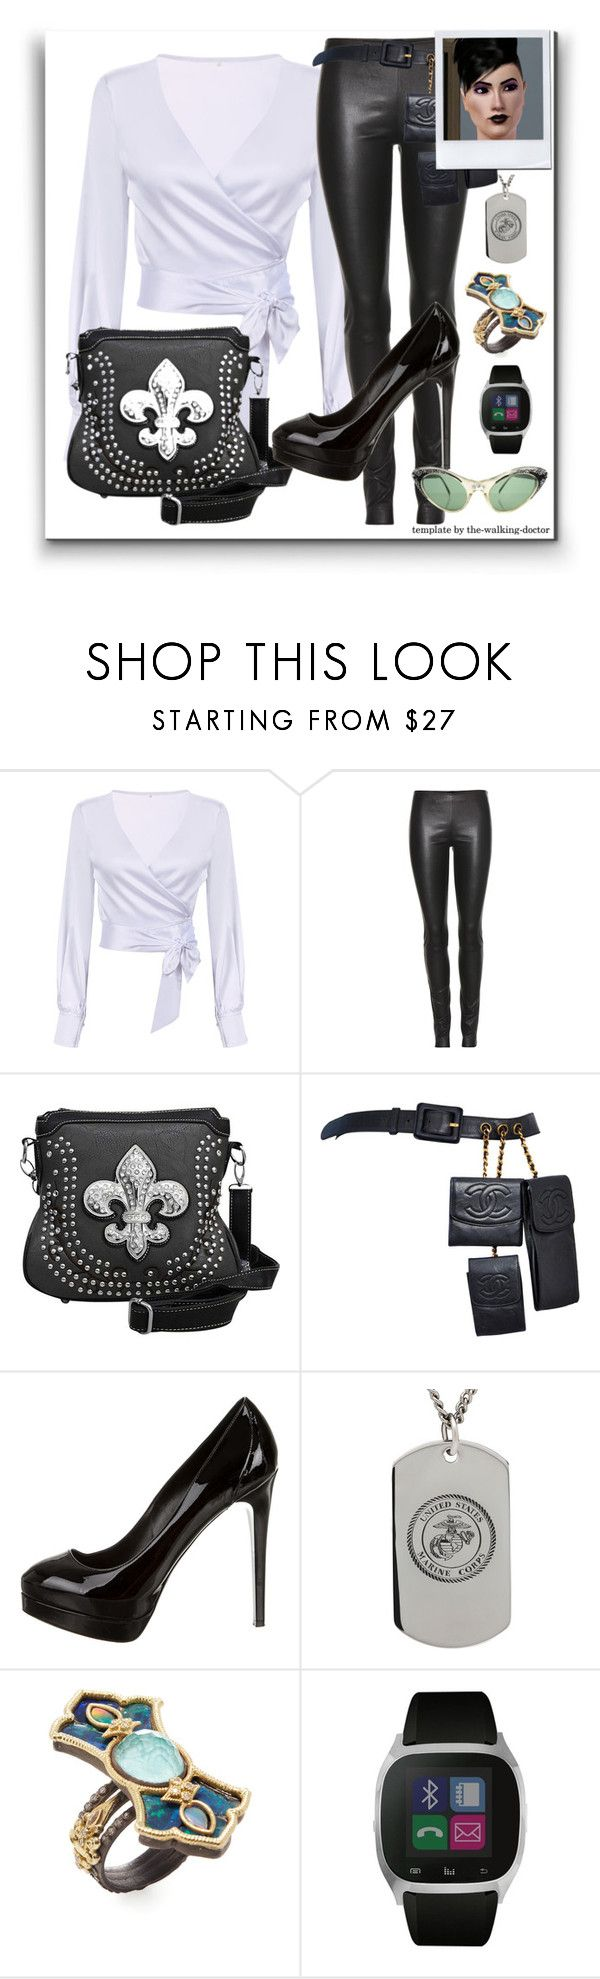 """It's All Black & White"" by the-walking-doctor ❤ liked on Polyvore featuring The Row, Chanel, Ruthie Davis, Armenta and iTouch"